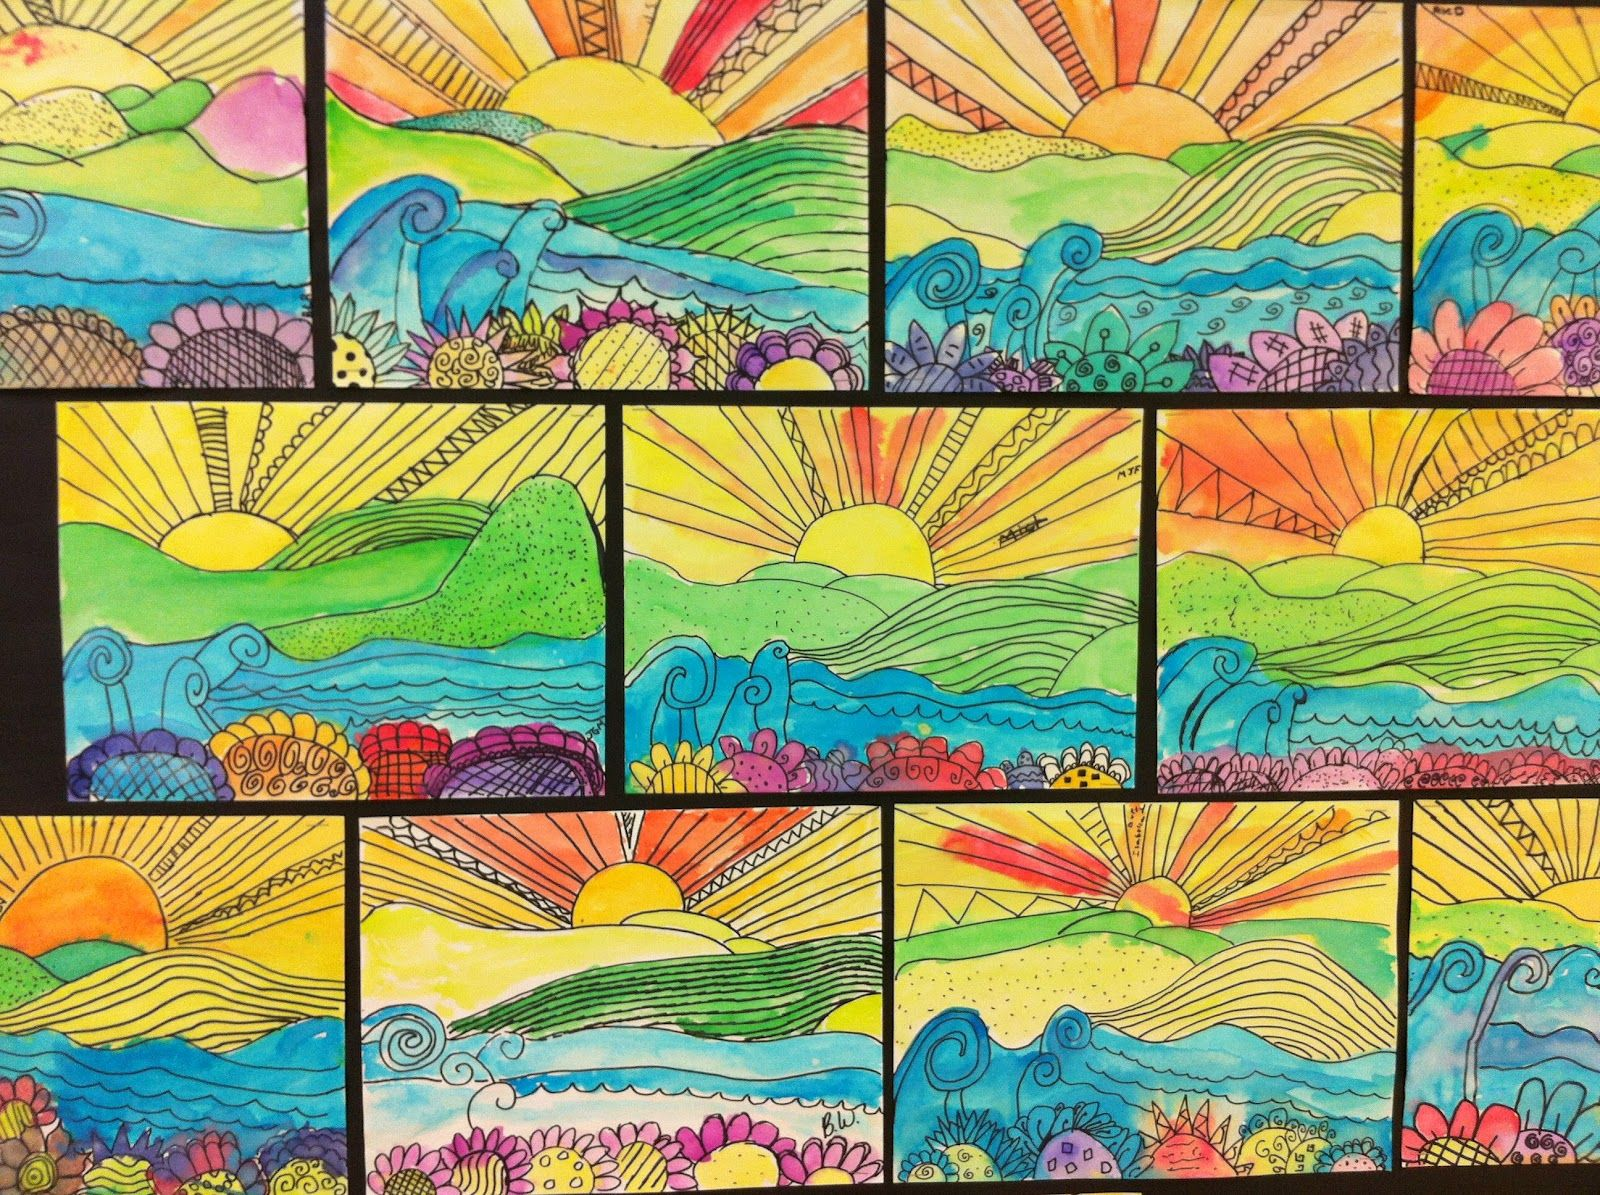 341 best images about Elementary Art Lessons on Pinterest | Cut ...